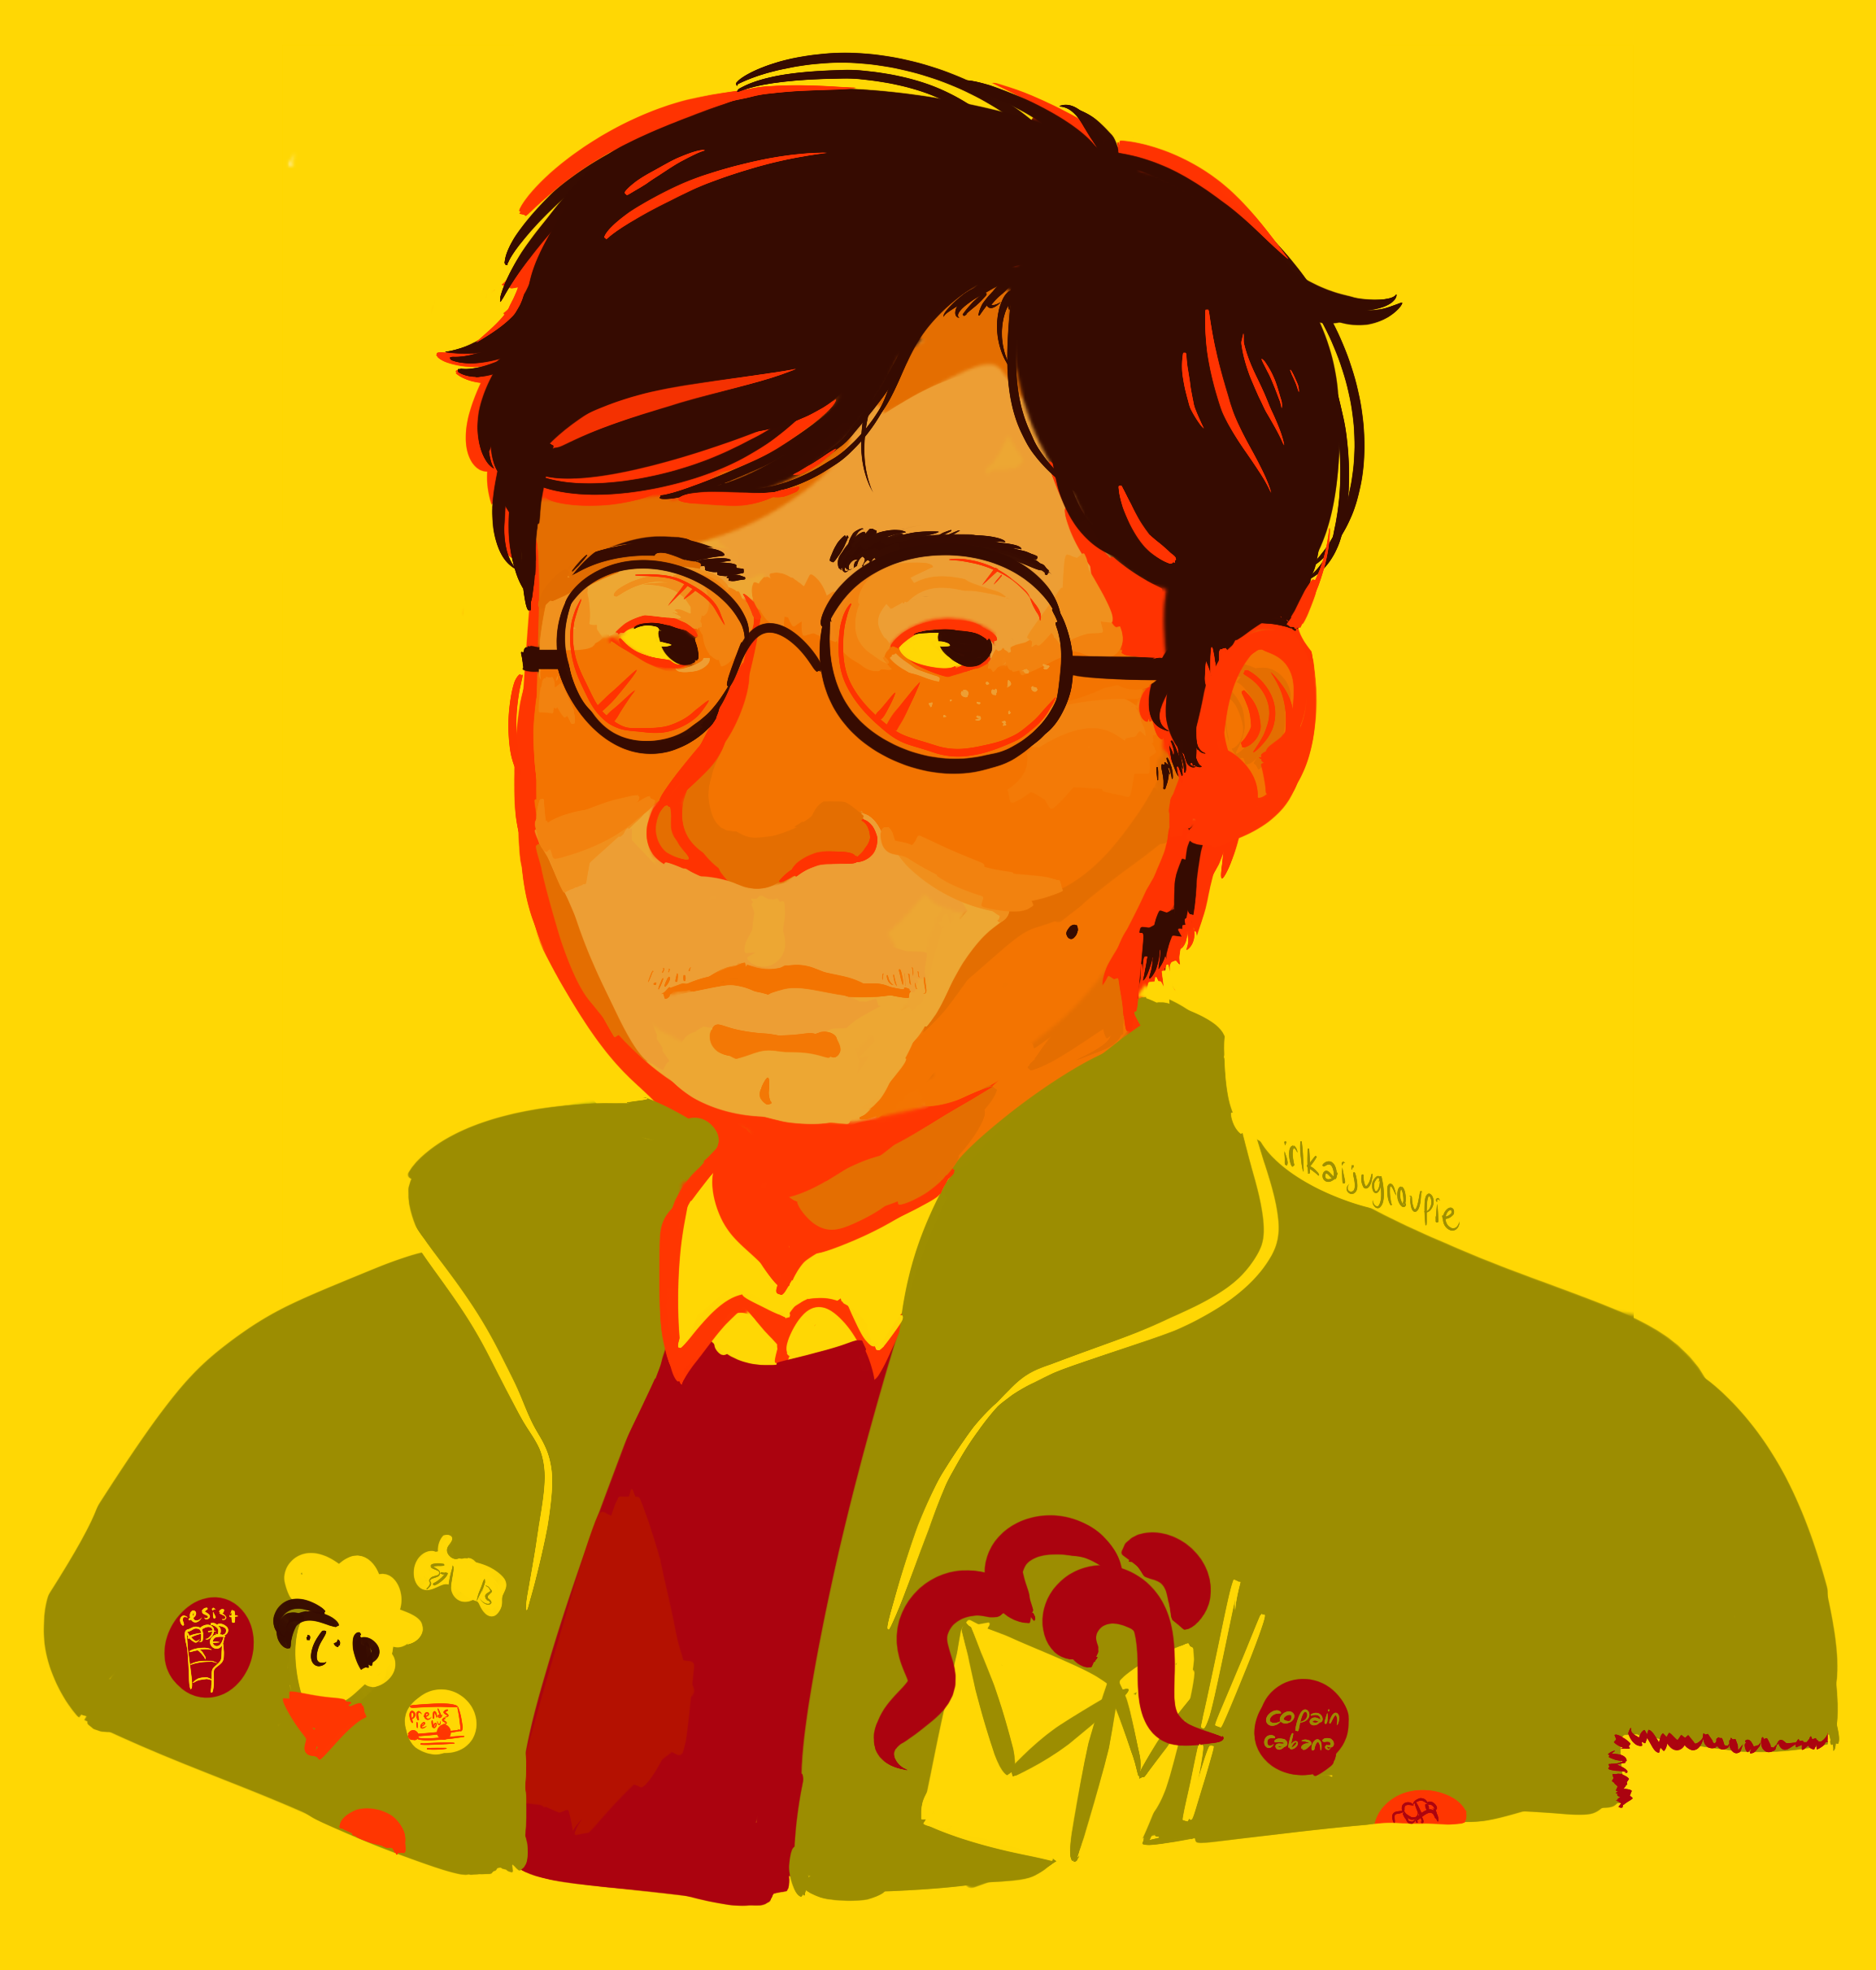 Artwork of me. I'm a round faced, light-skinned guy with short black hair and round black glasses. I'm wearing a collared shirt, red sweater, and big green coat with various pins and patches on it.